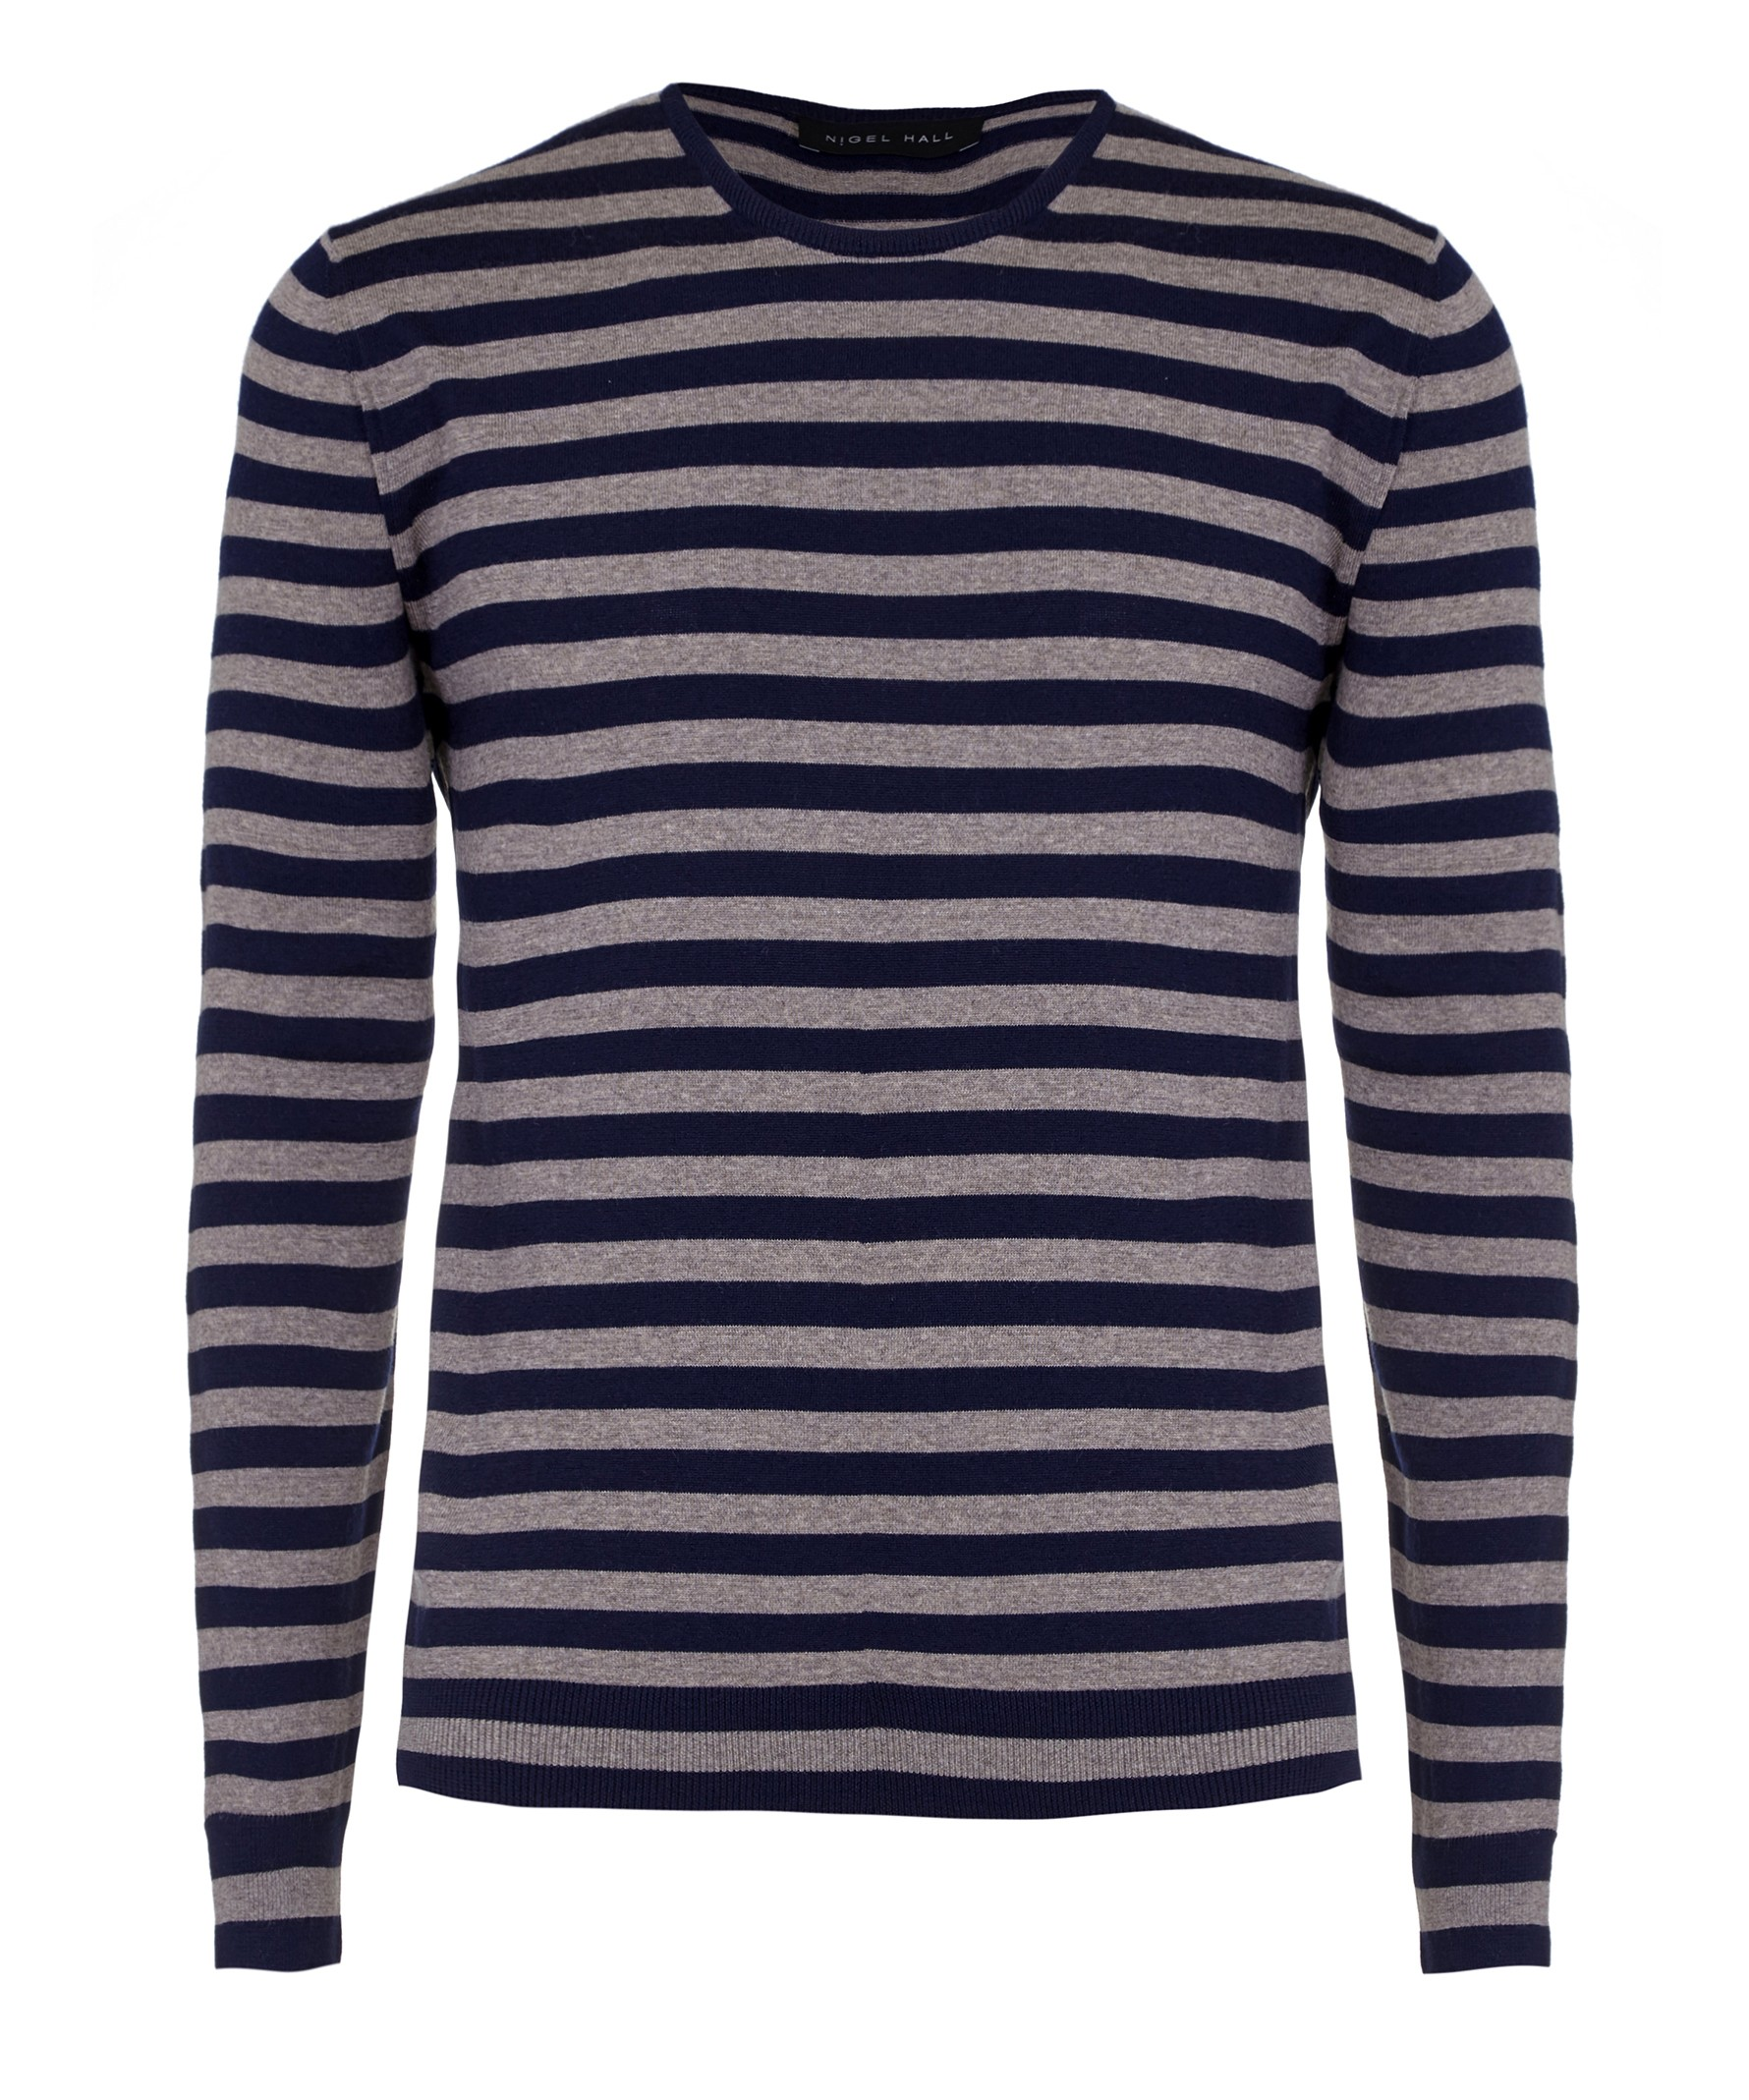 Nigel Hall Navy Stripe Navy and Pebble Striped Crew Neck Sweater (Morton)